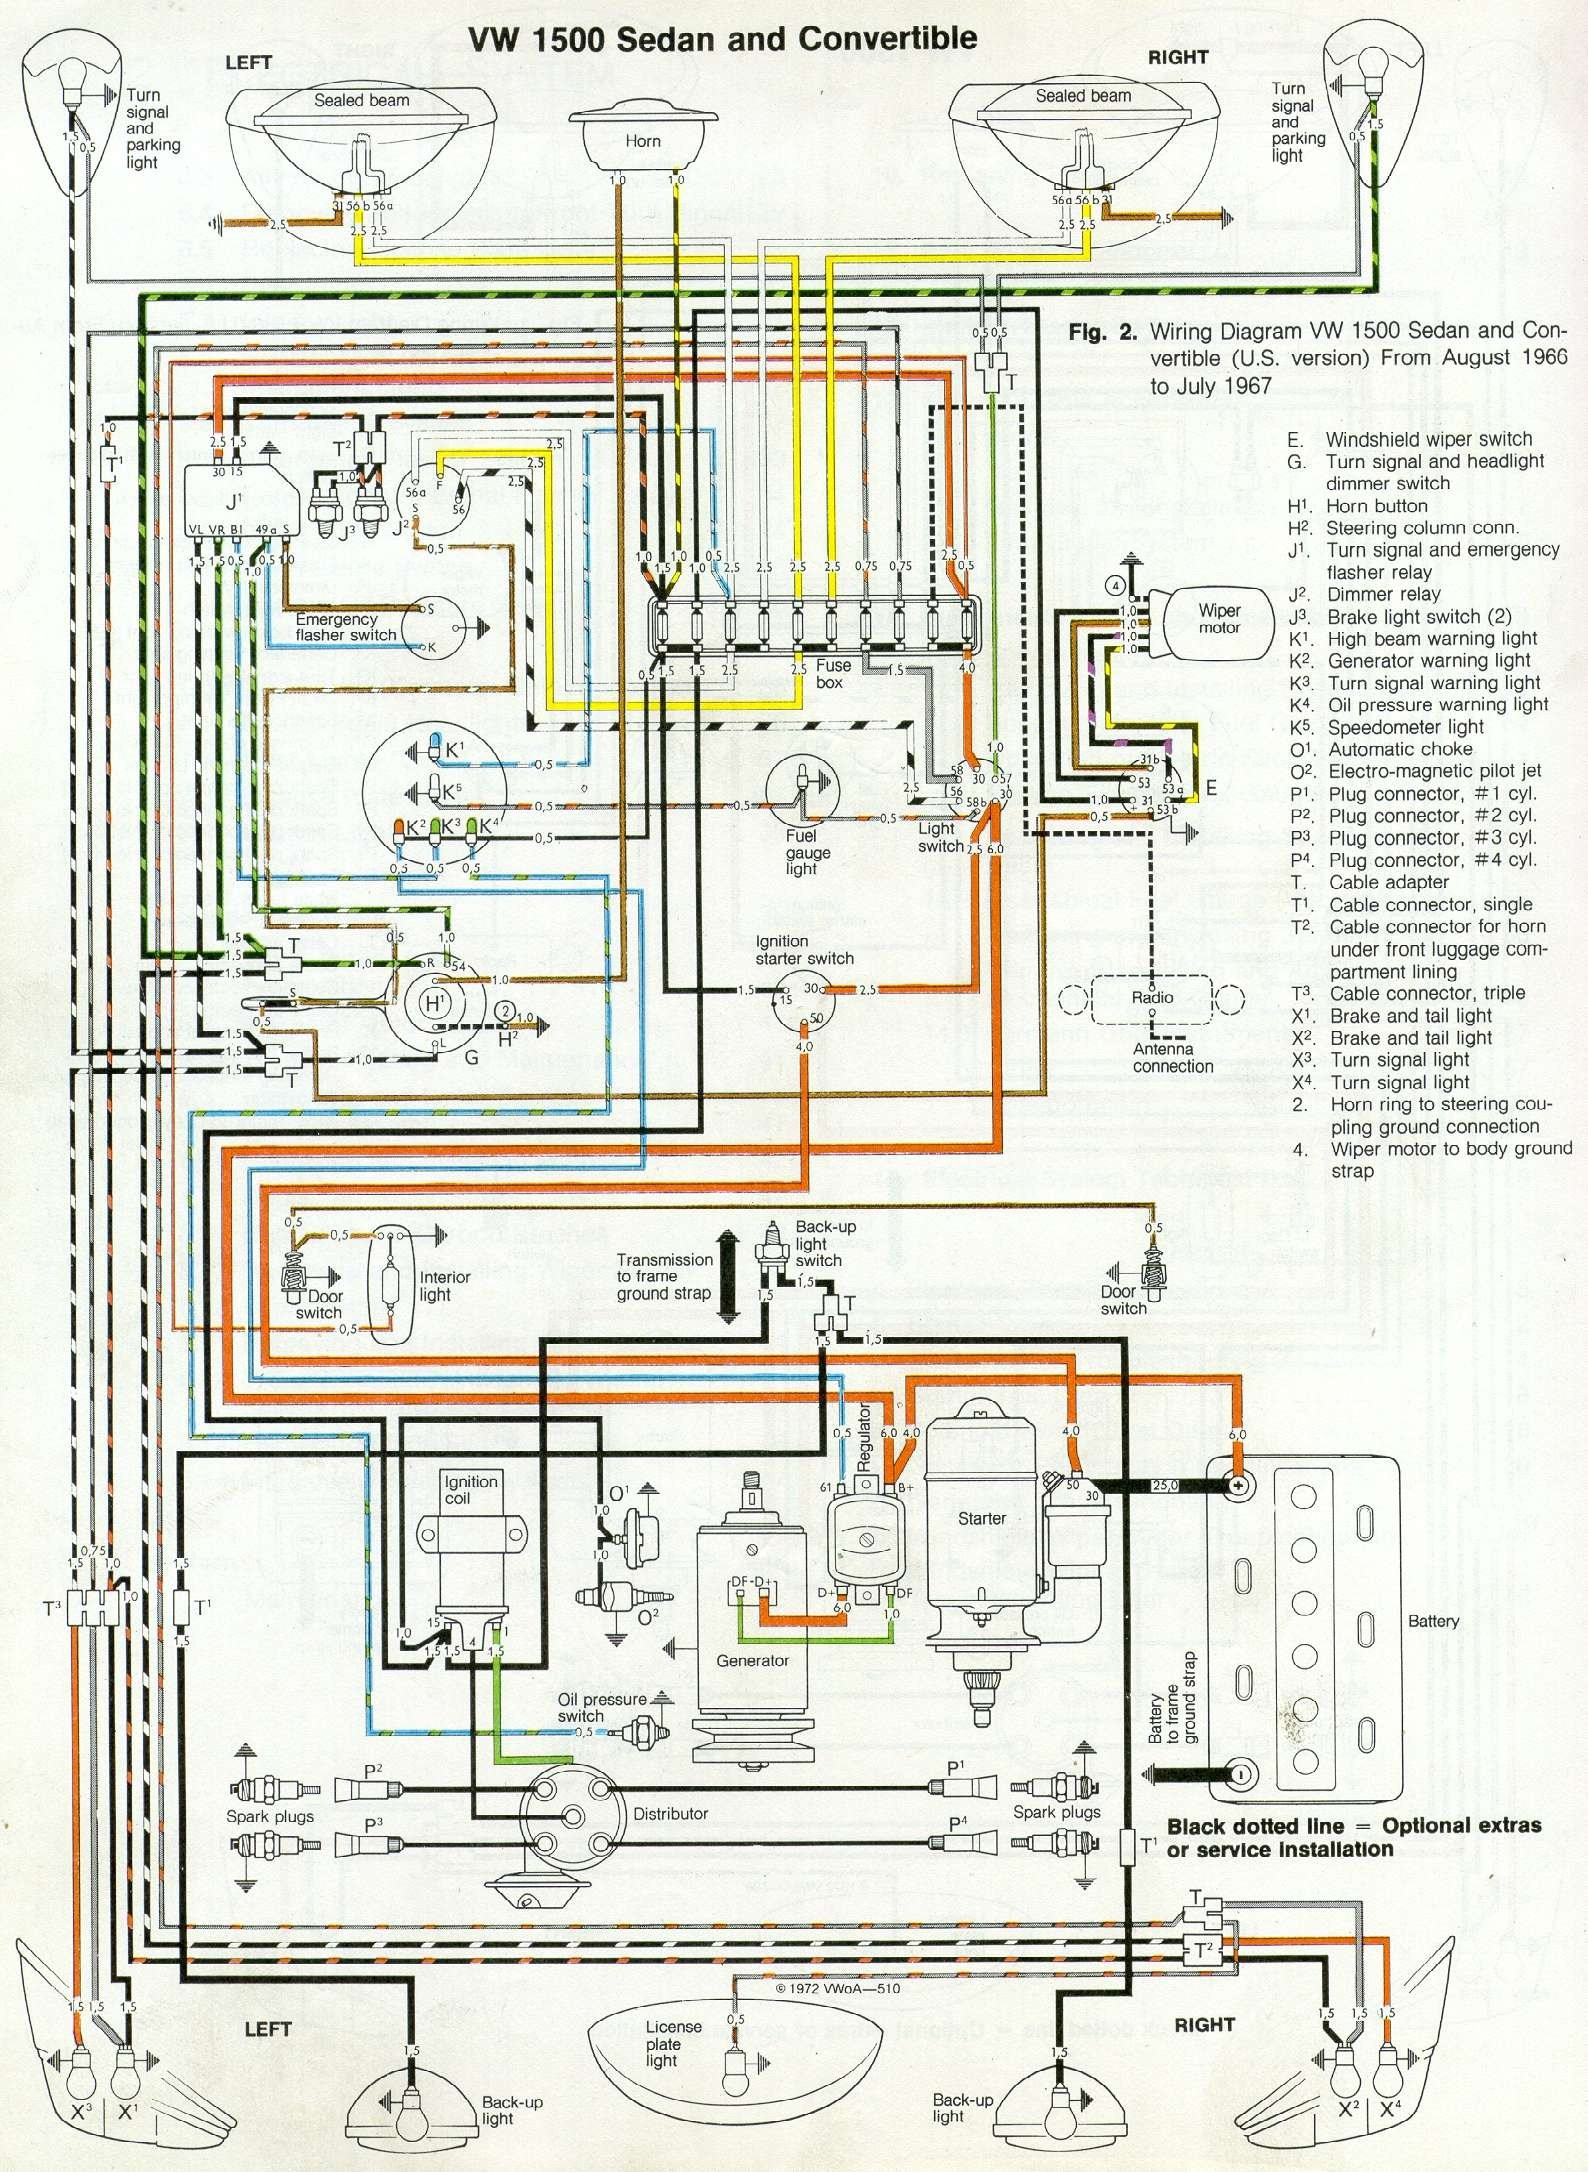 VW Beetle Wiring Digram 1967 vw wiring harness detailed schematics diagram